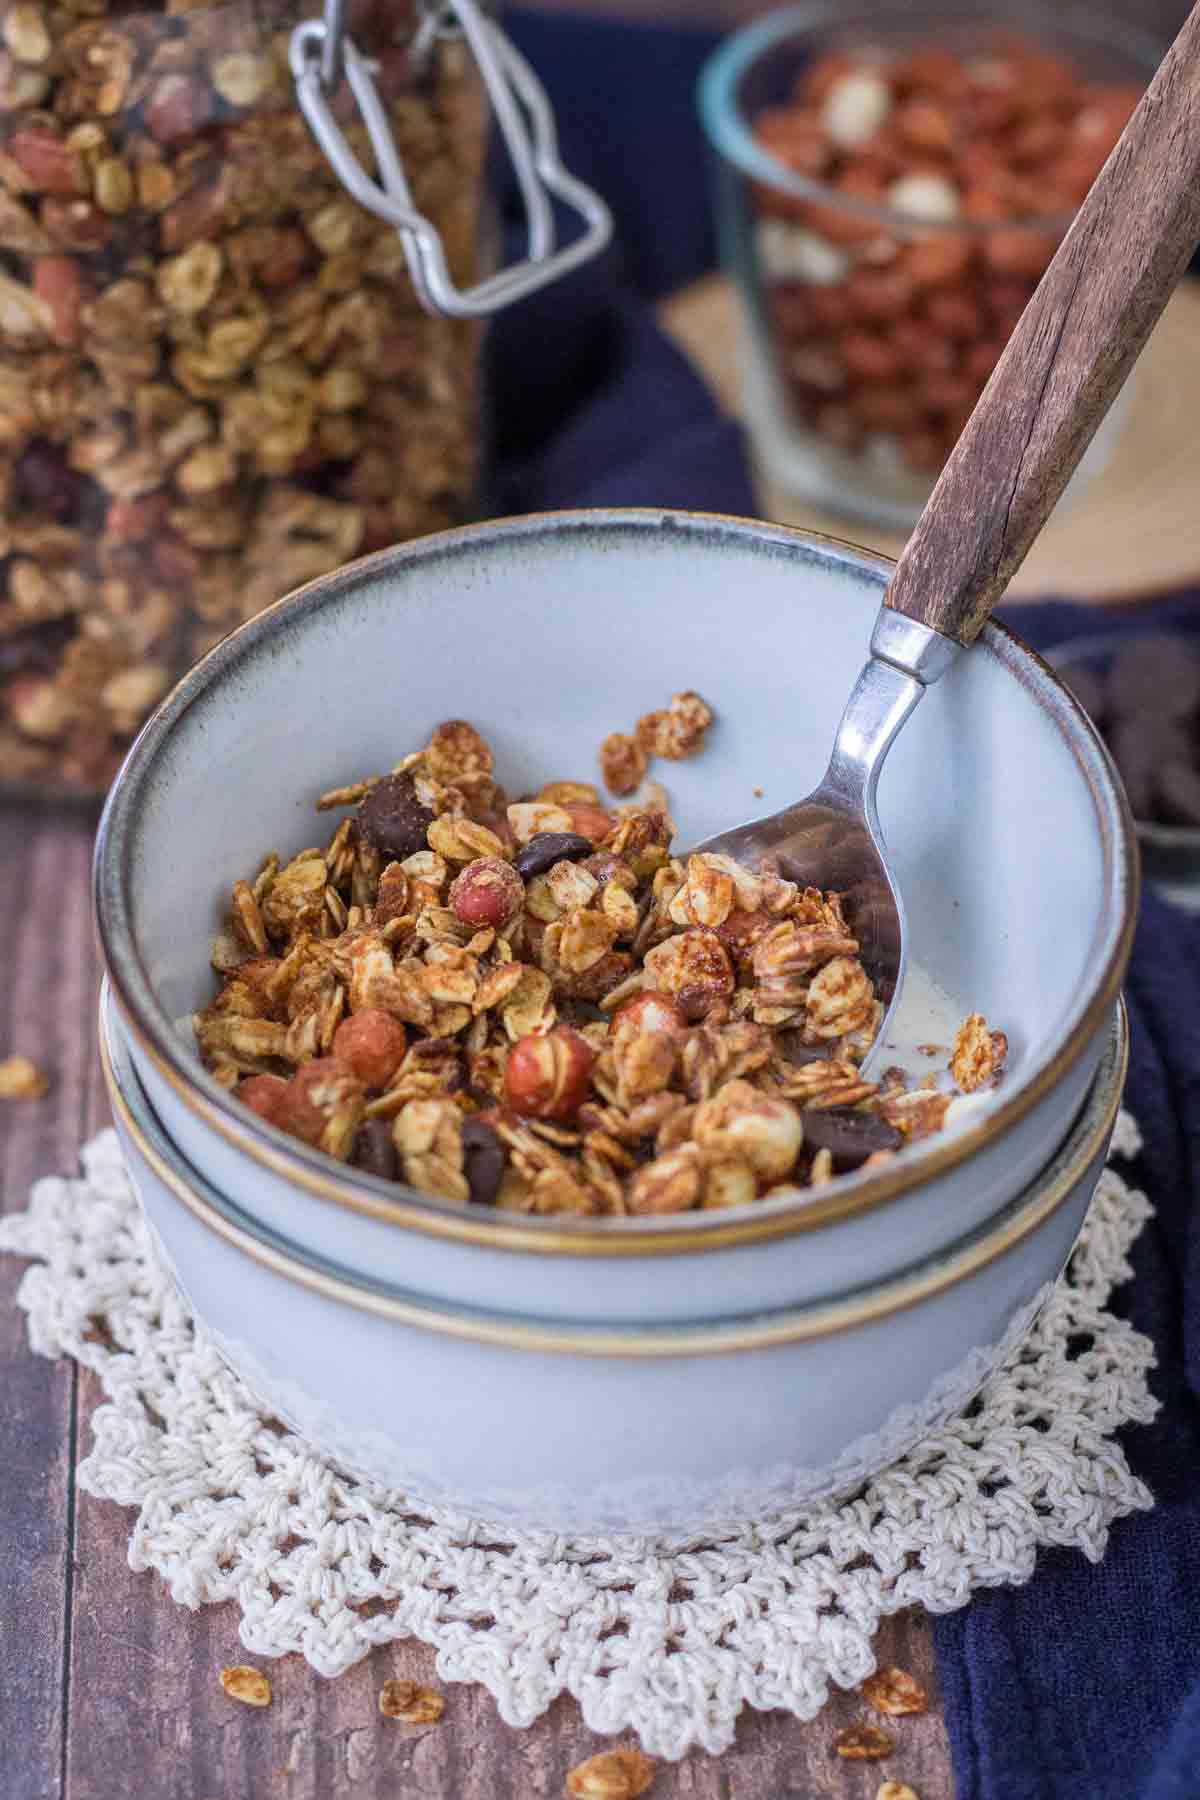 Homemade Peanut Butter Granola with a milk served in a bowl with a spoon